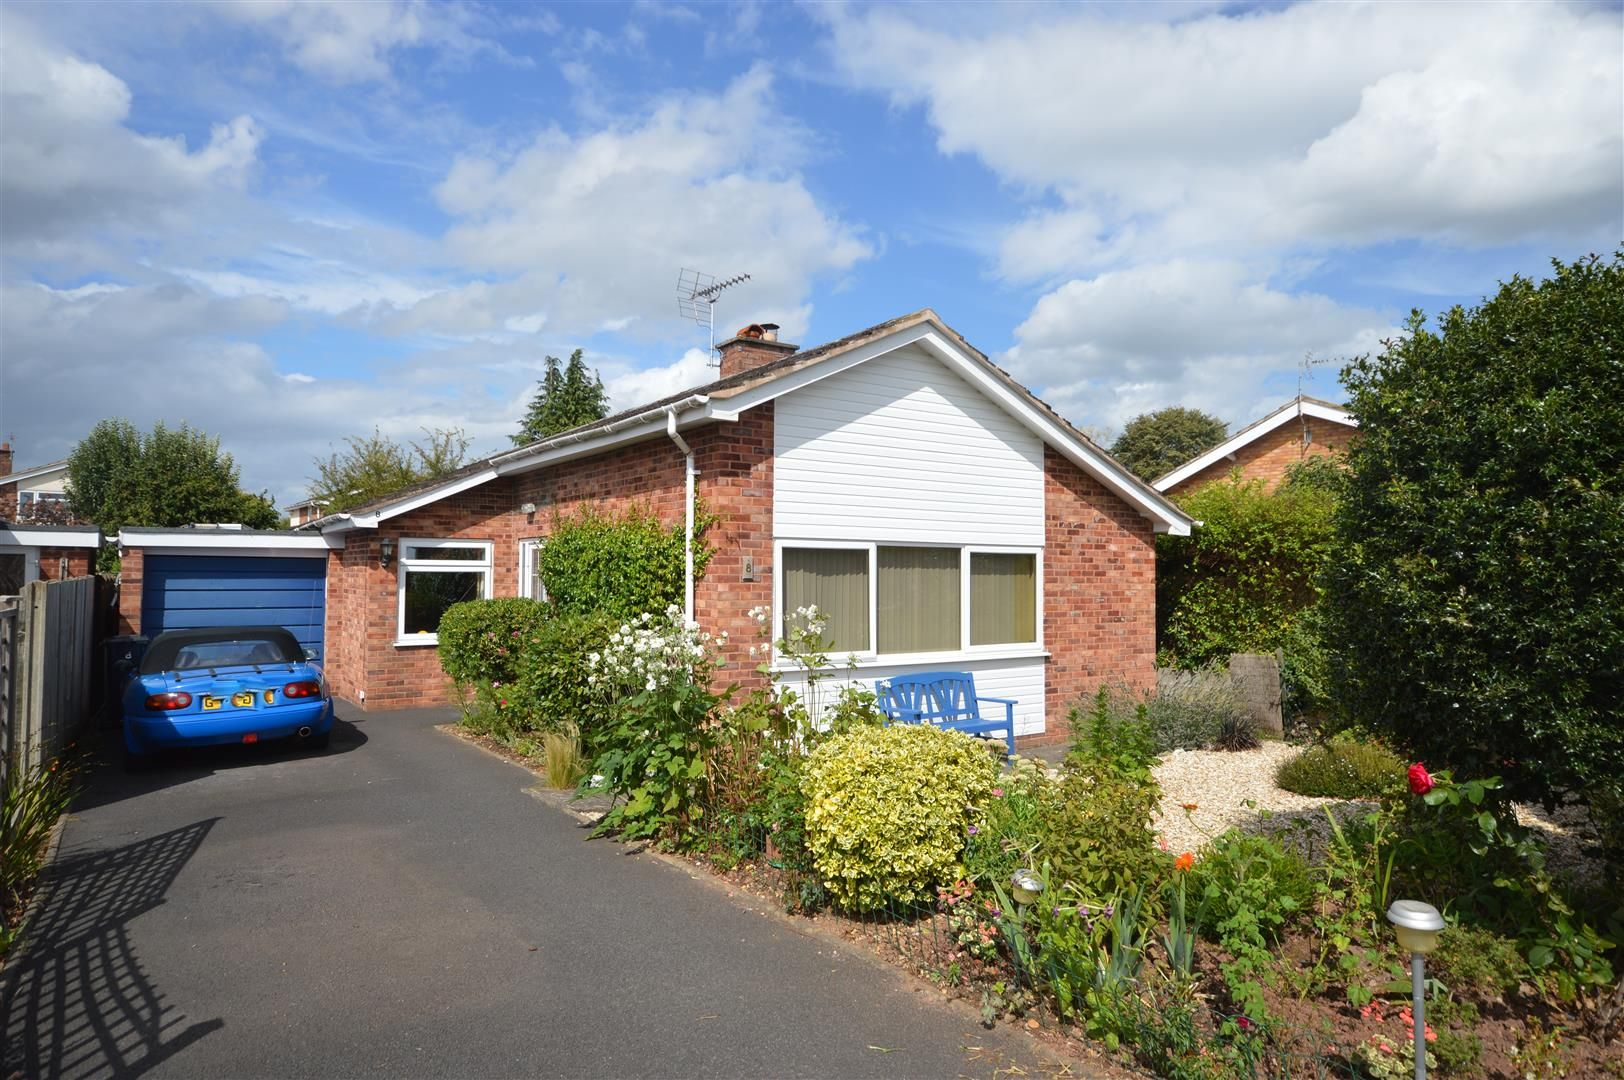 3 bed detached-bungalow for sale in Bodenham, HR1